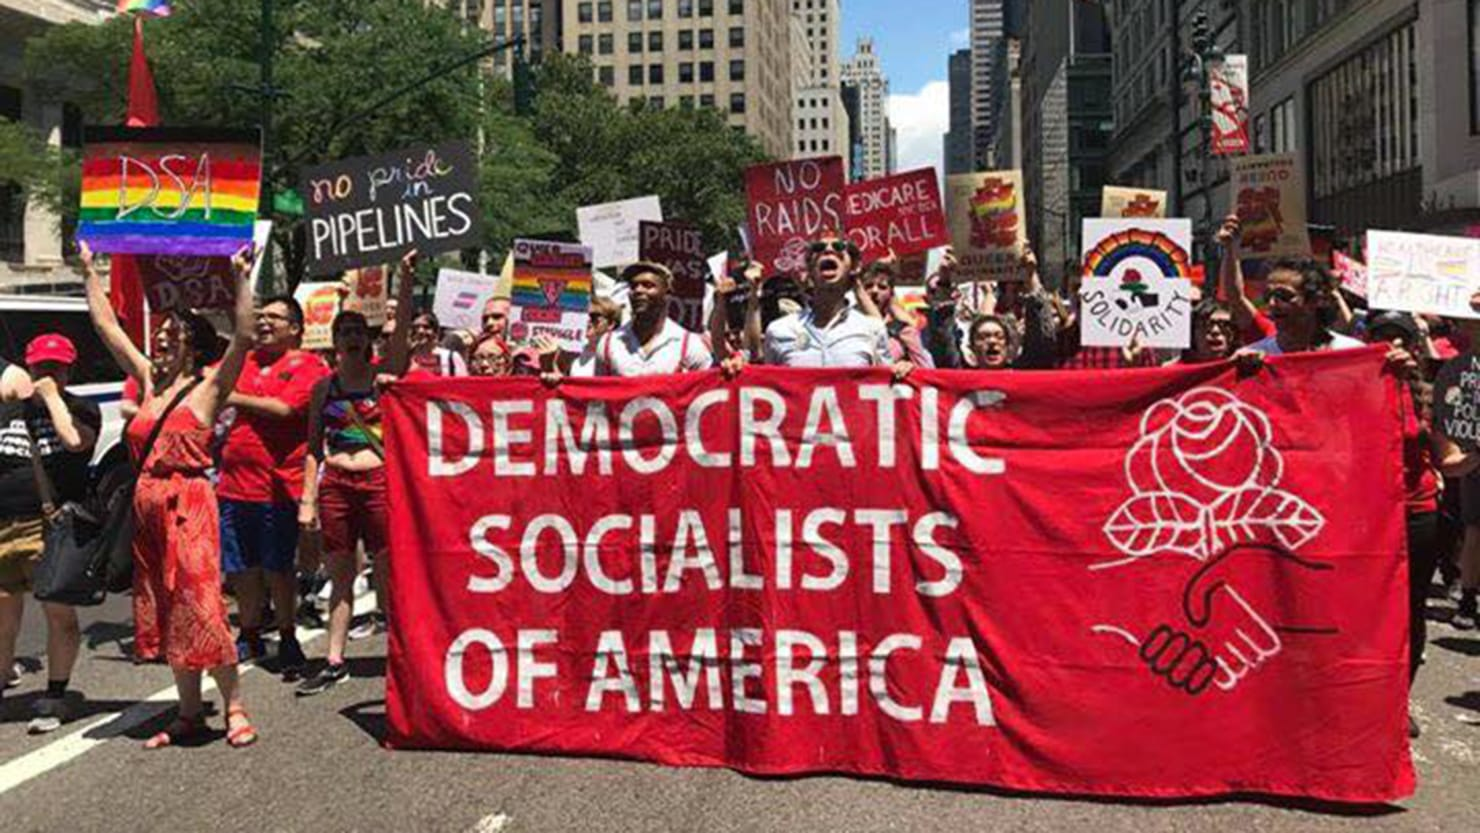 Bedfellows: Democratic Socialists of America, Dozens Of Teachers Unions To Host 'Day Of Resistance'